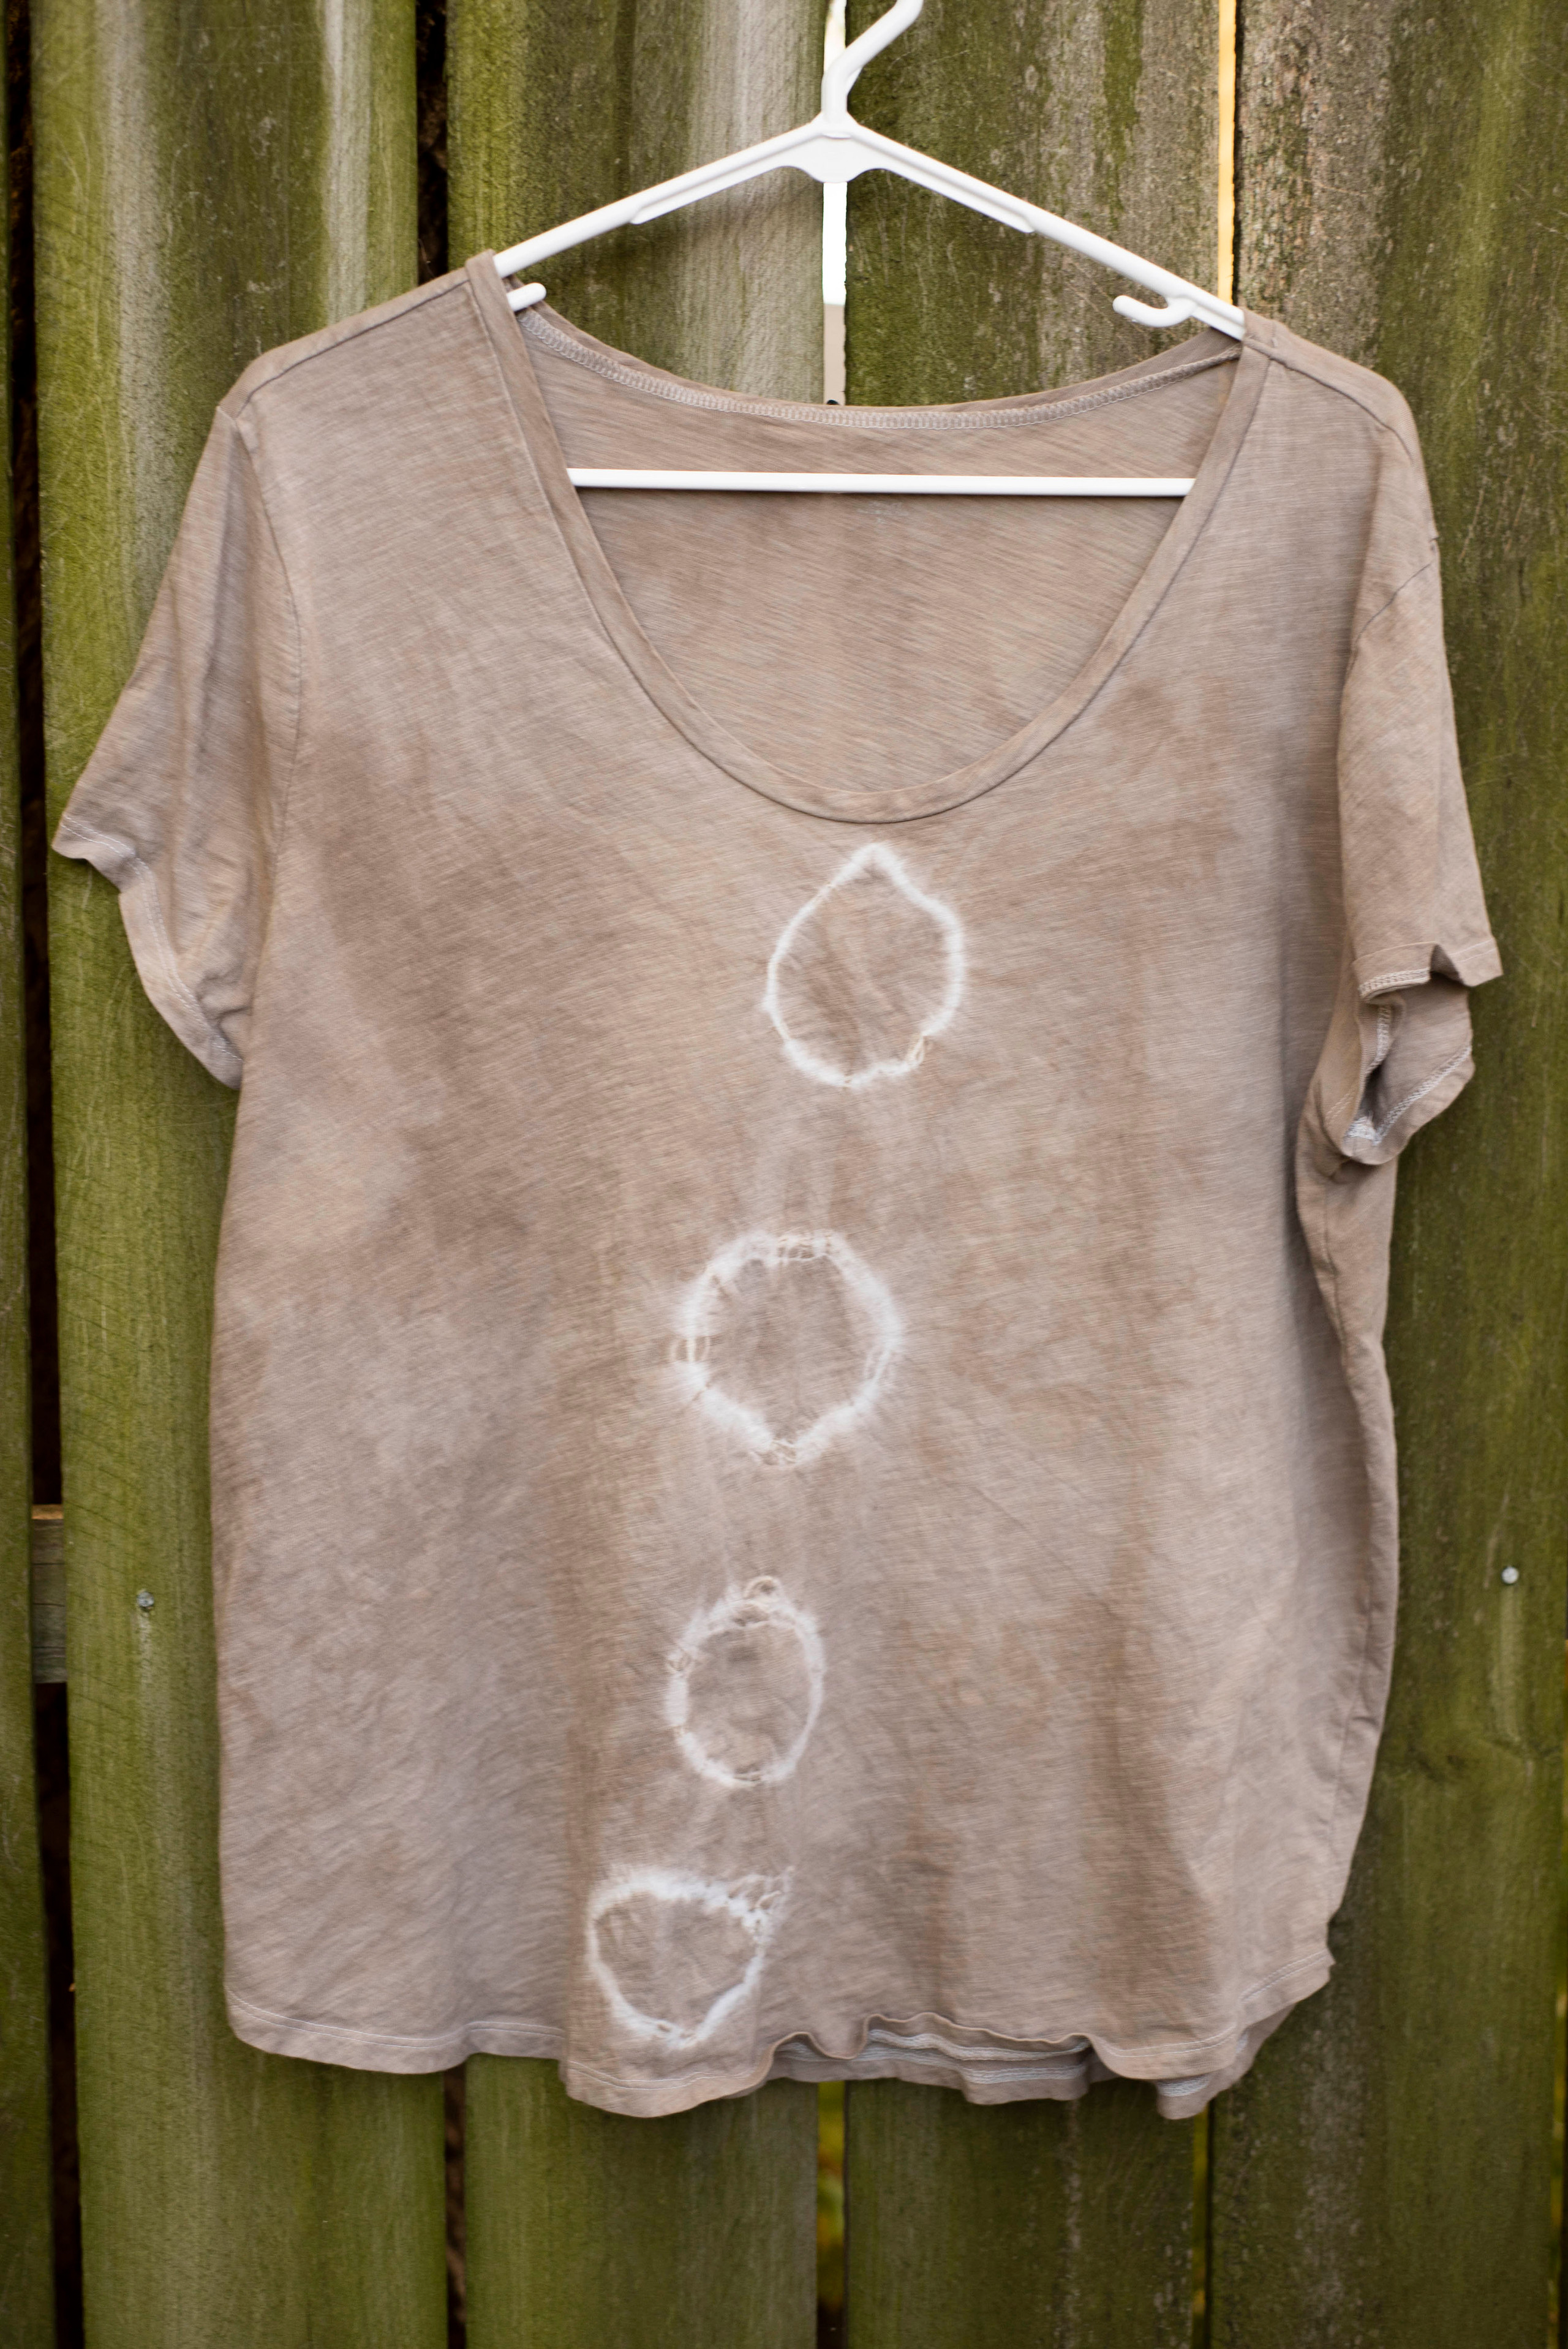 A brown tee shirt with four organic shaped circles down the front.